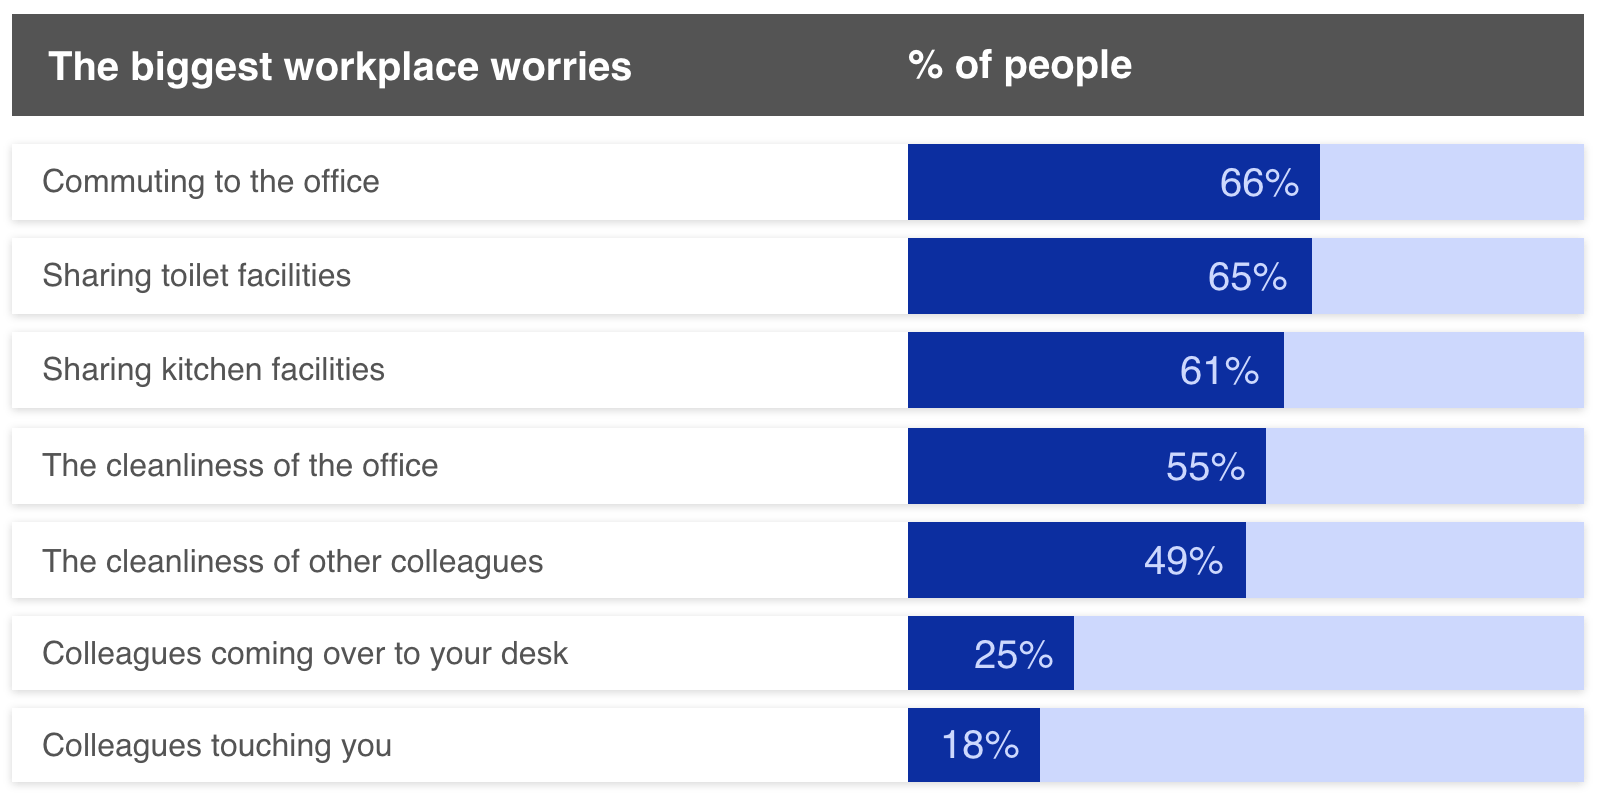 Bar chart showing biggest worries about going back to the workplace by percentage